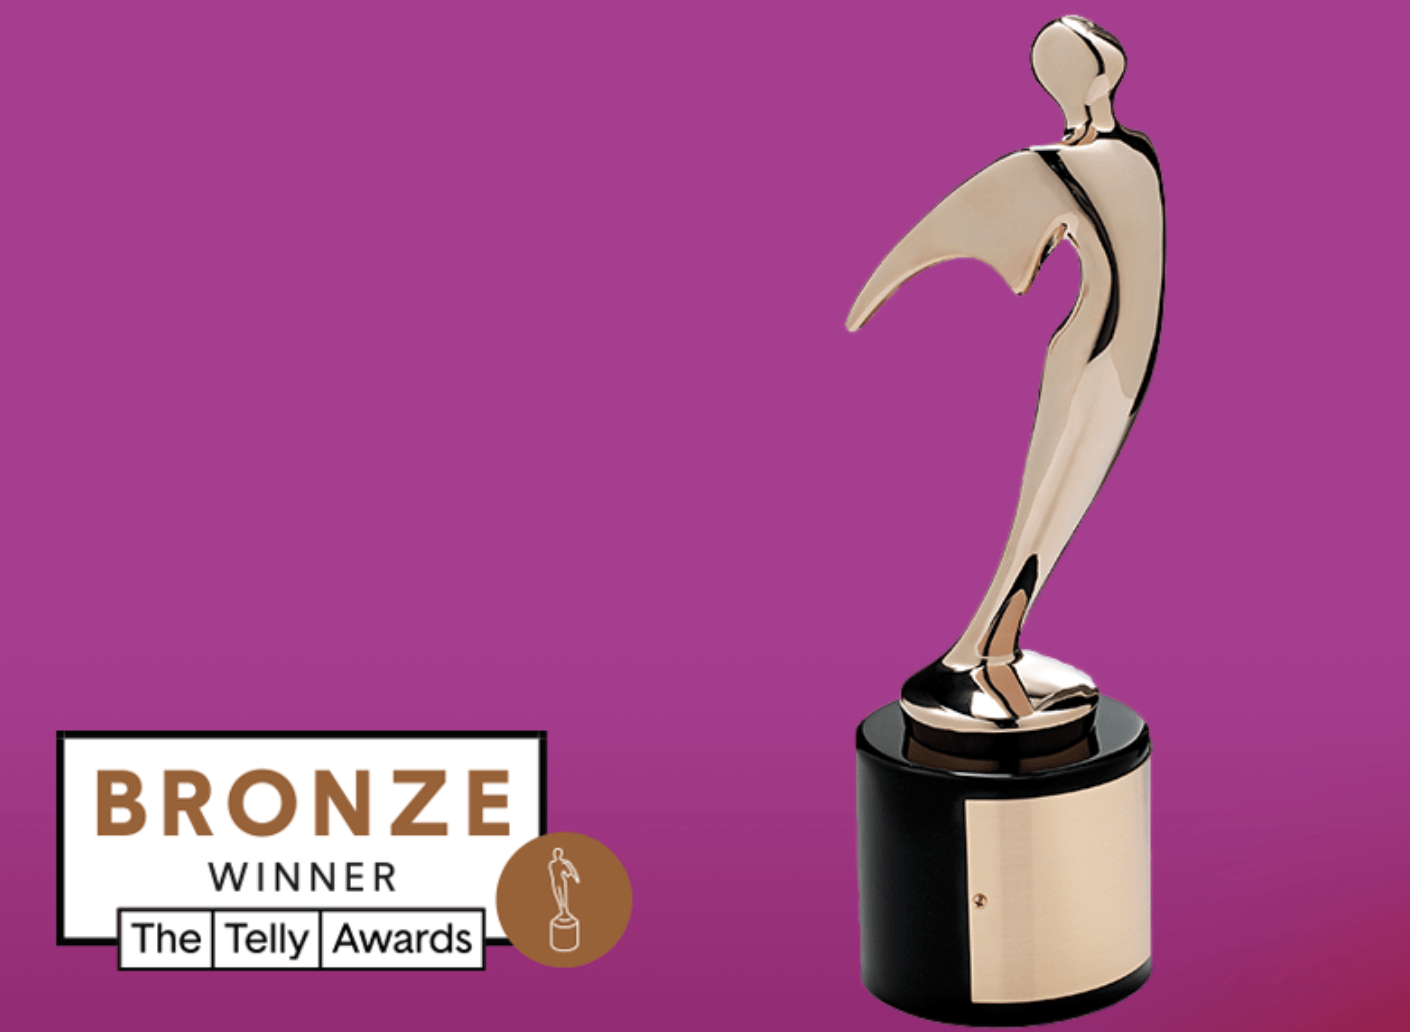 https://community-international.com/wp-content/uploads/2020/02/bronze-telly-awards-77agency.png